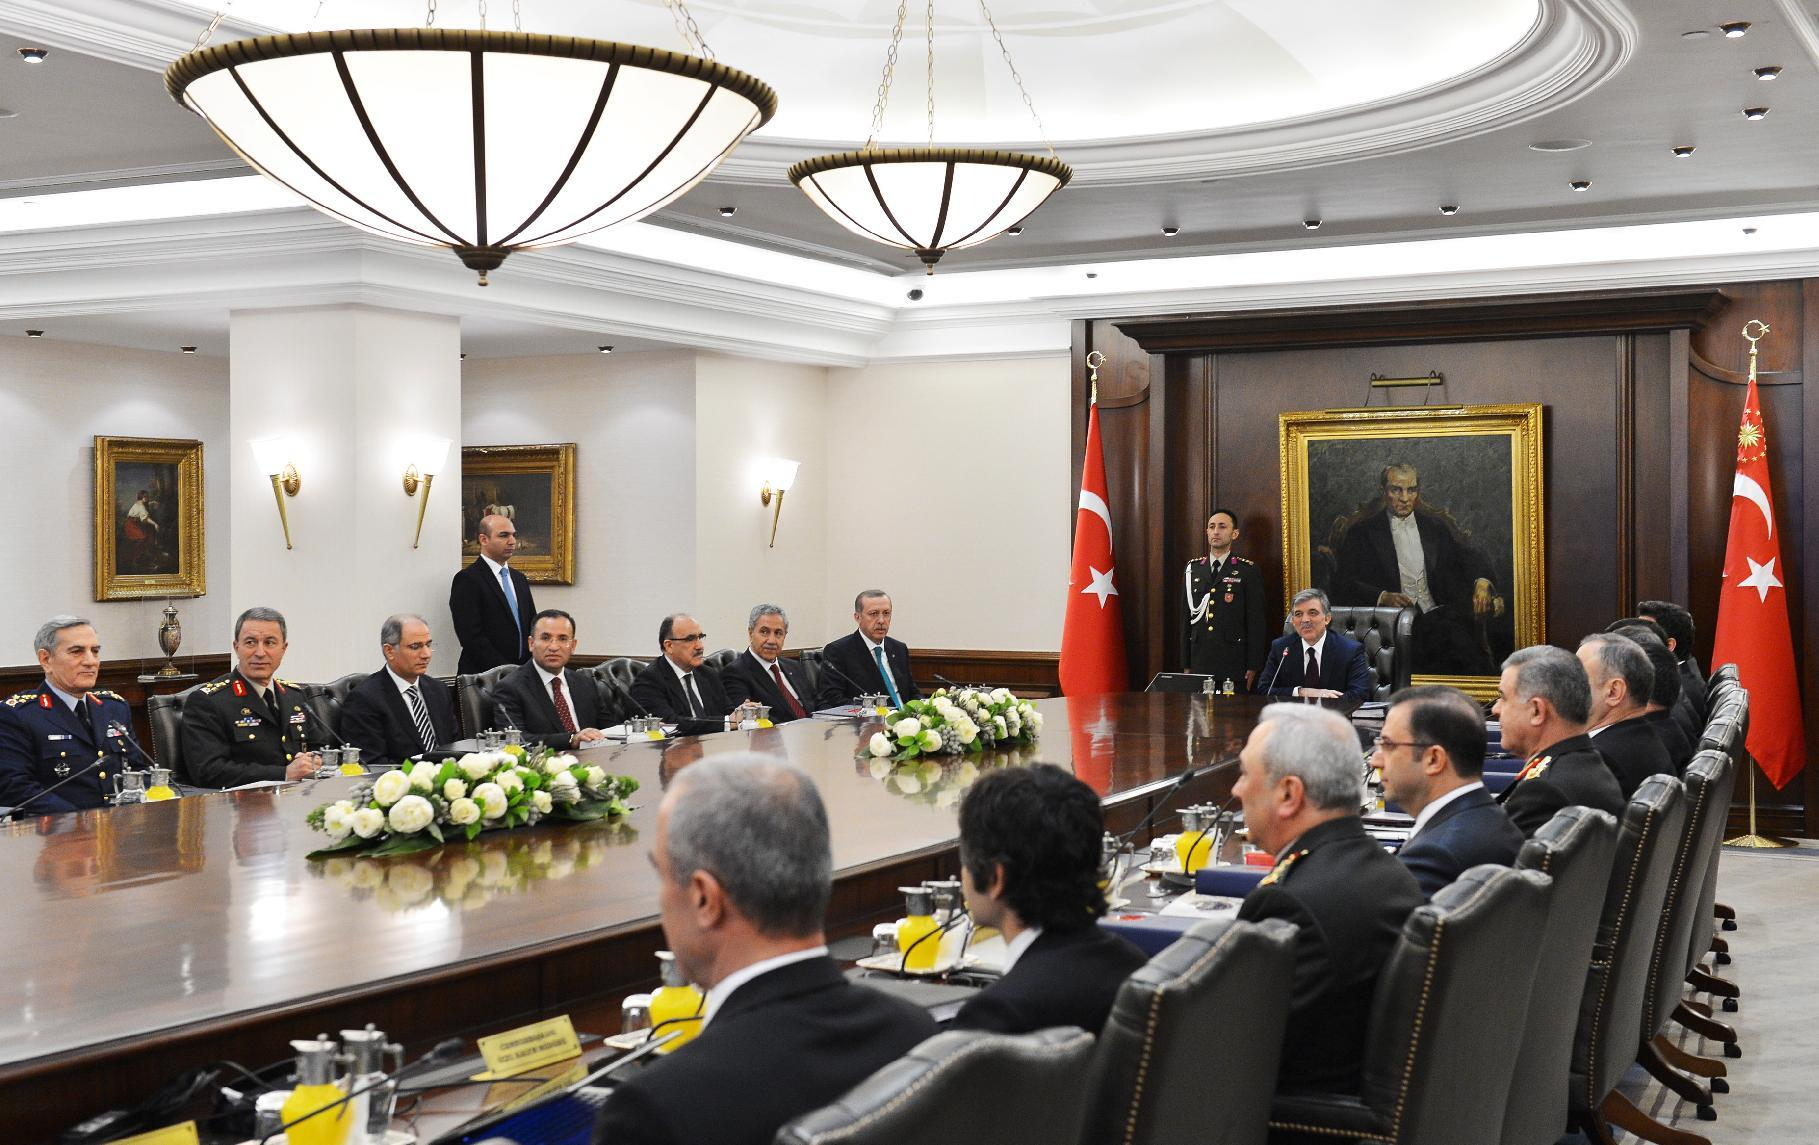 In this photo released by the Turkish Presidency Press Office, Turkish President Abdullah Gul, center, and Prime Minister Recep Tayyip Erdogan, 7th left, during a meeting of the National Security Council in Ankara, Turkey, Thursday, Dec. 26, 2013. After a decade of dominance over Turkey's political scene, a rapidly developing corruption and bribery scandal has for the first time left Erdogan looking off balance and not in control of the political reins.(AP Photo/Mehmet Demirci, Turkish Presidency Press Office, HO)